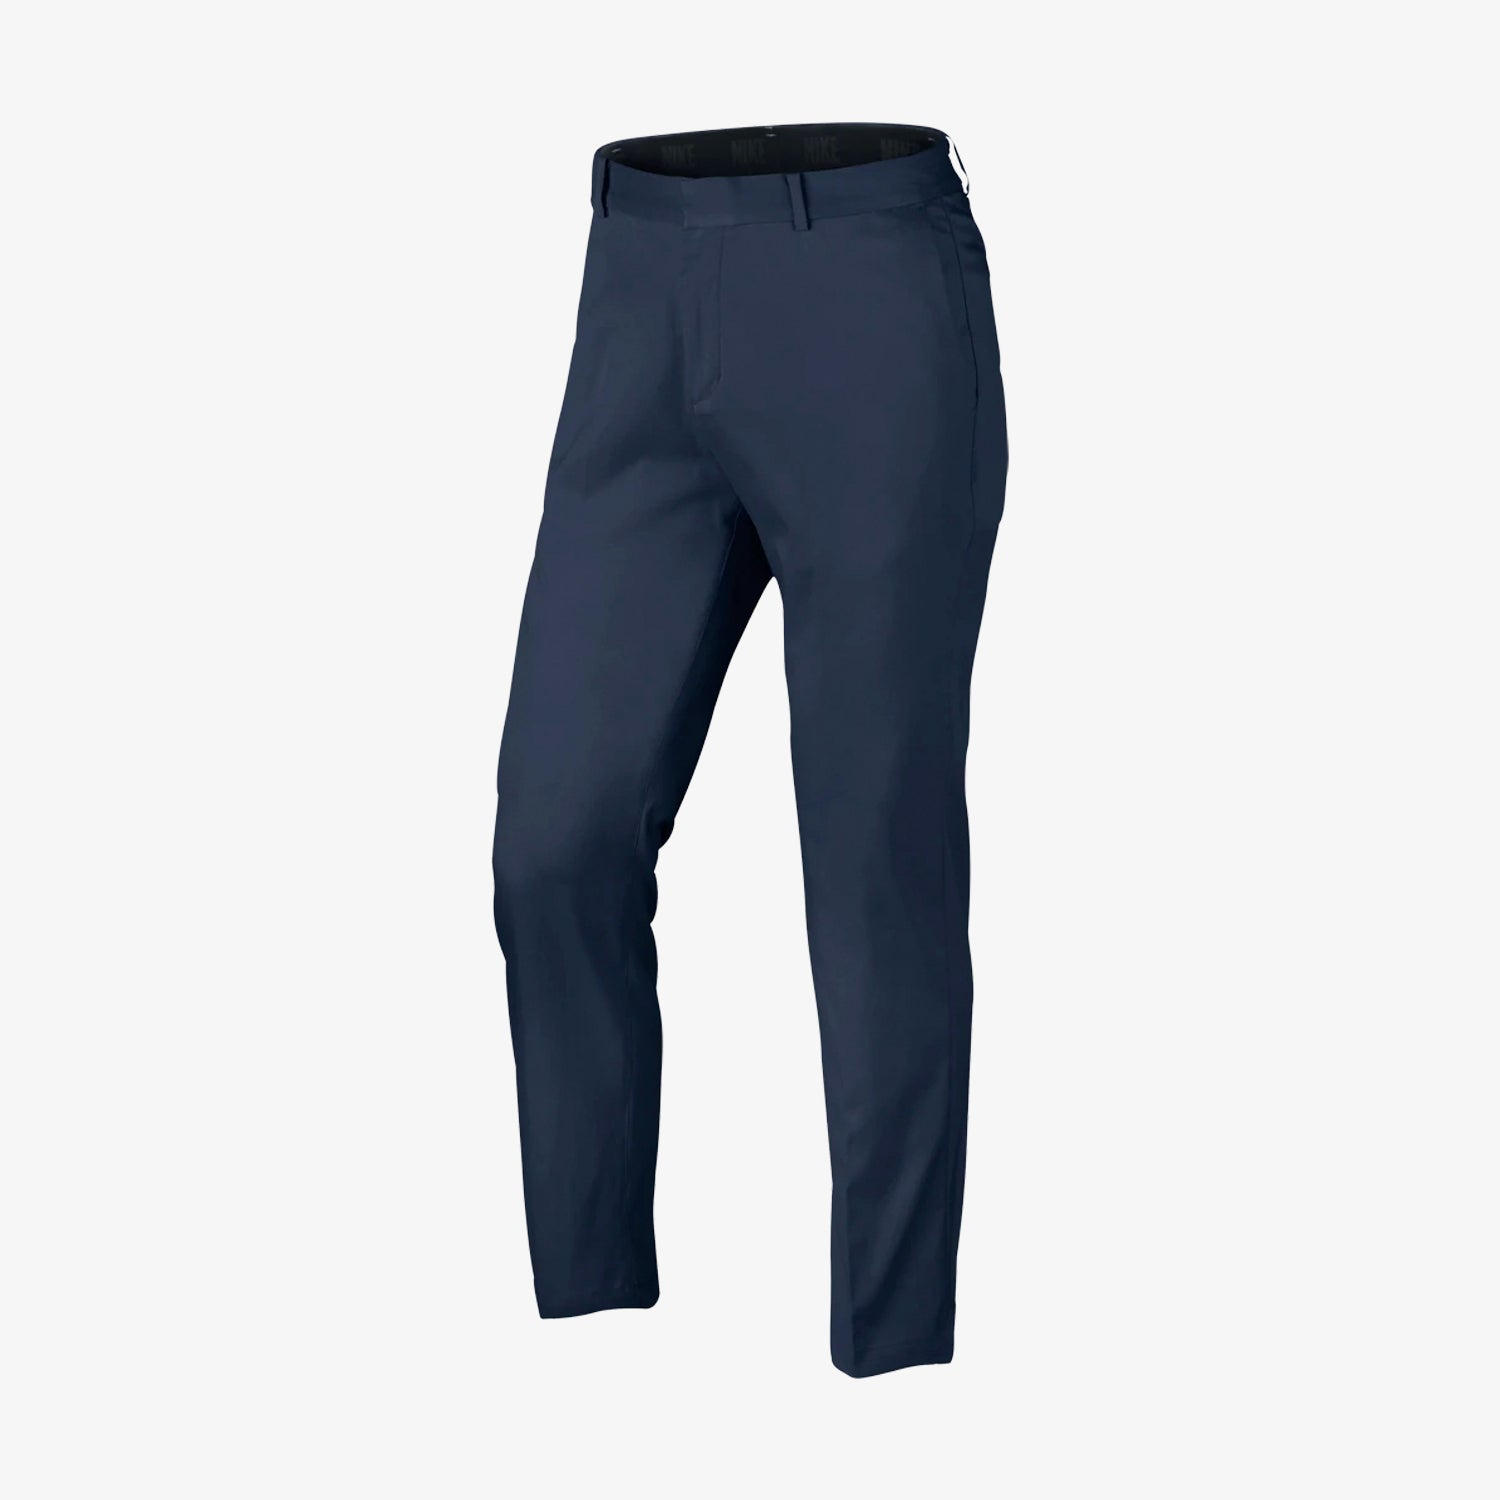 Flat Front Men's Golf Pants Navy